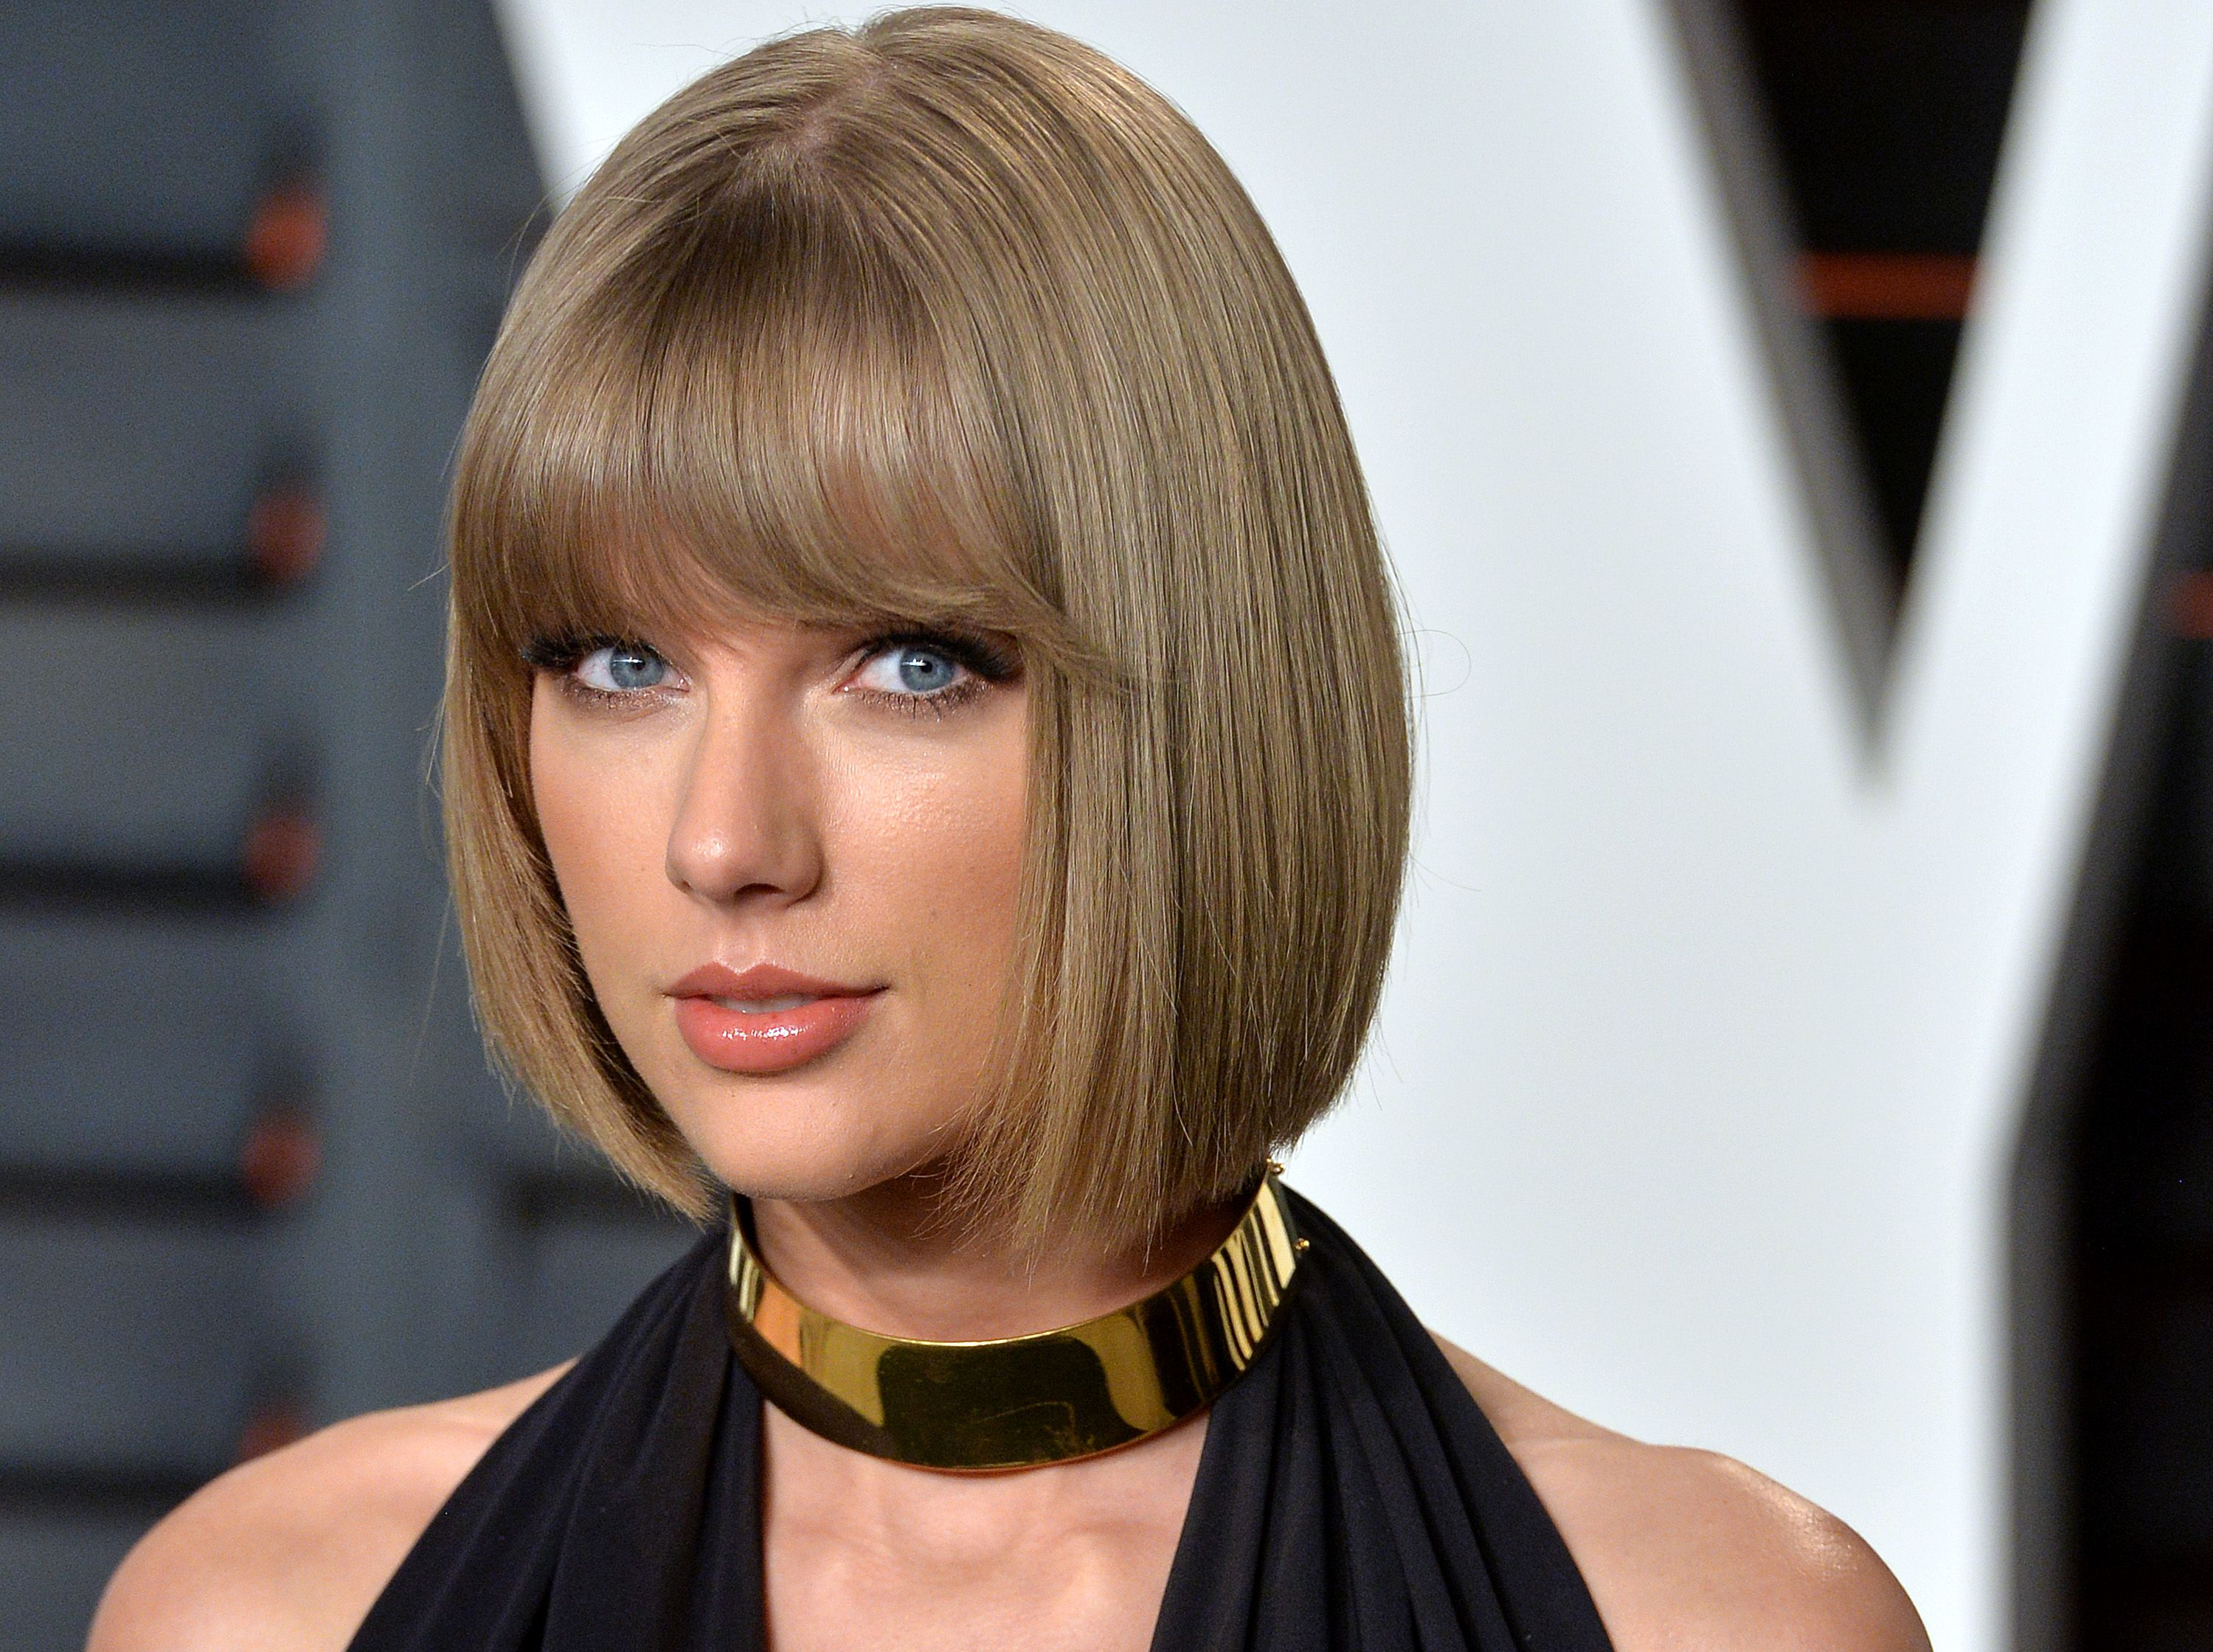 Taylor Swift Carries Army-Grade Supplies at All Times Because She's Afraid of Getting Attacked